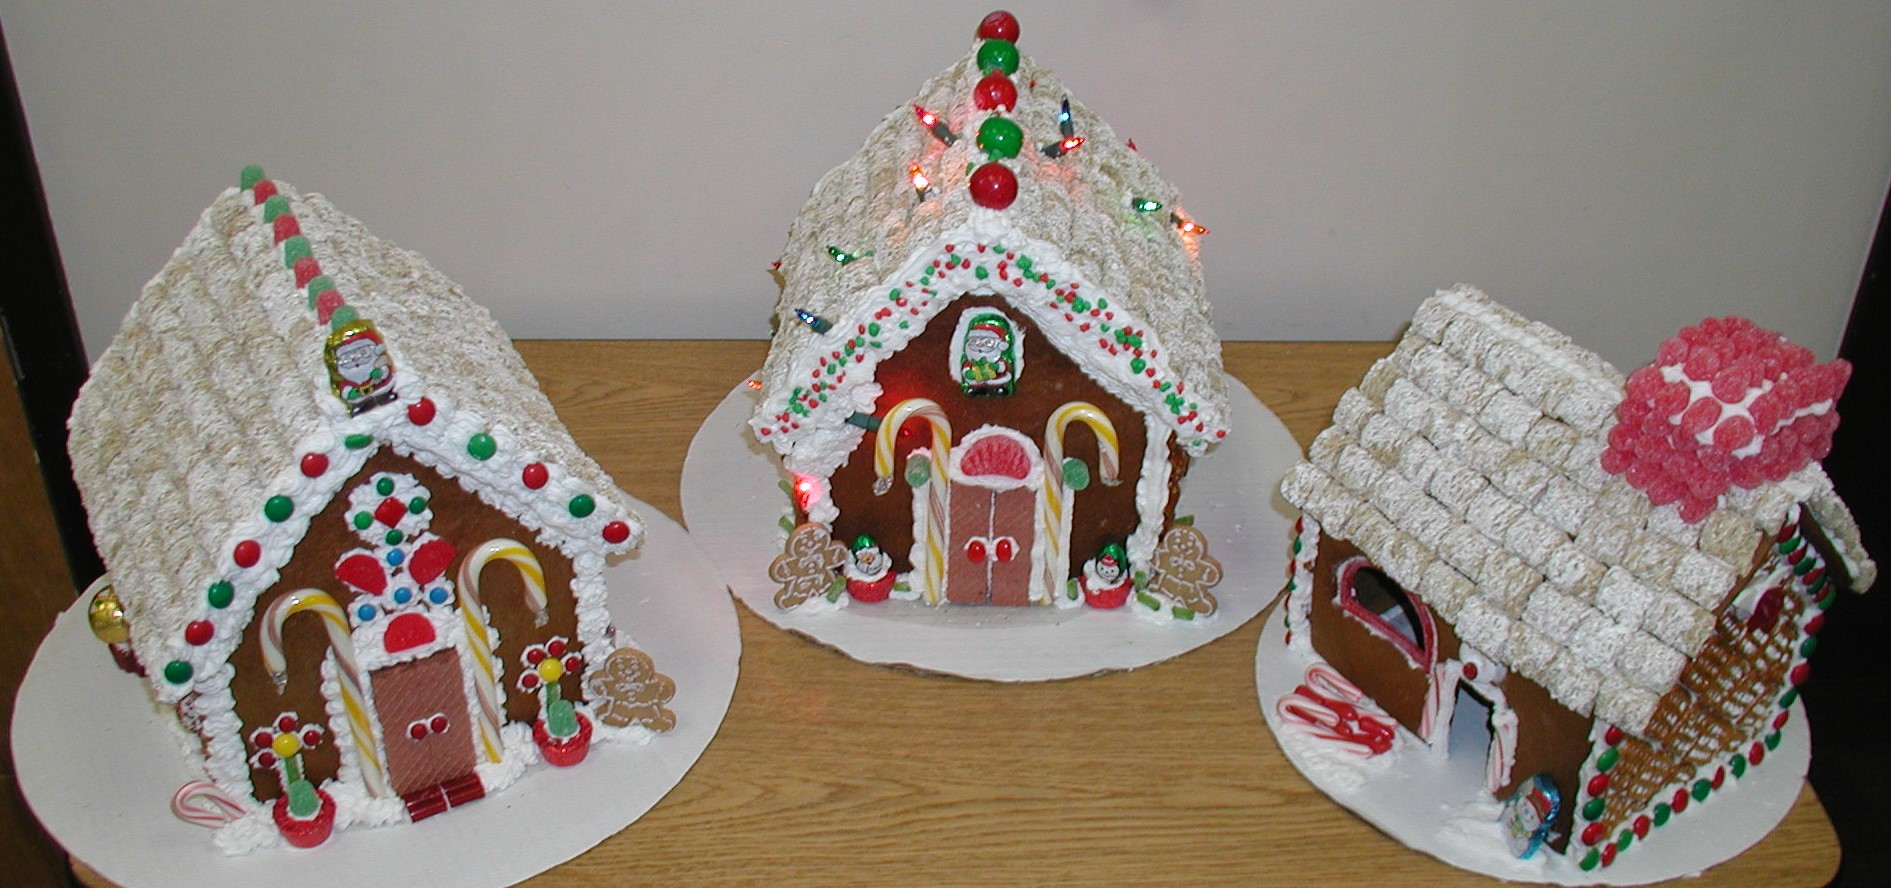 Gingerbread Decorating Workshops in Clemmons